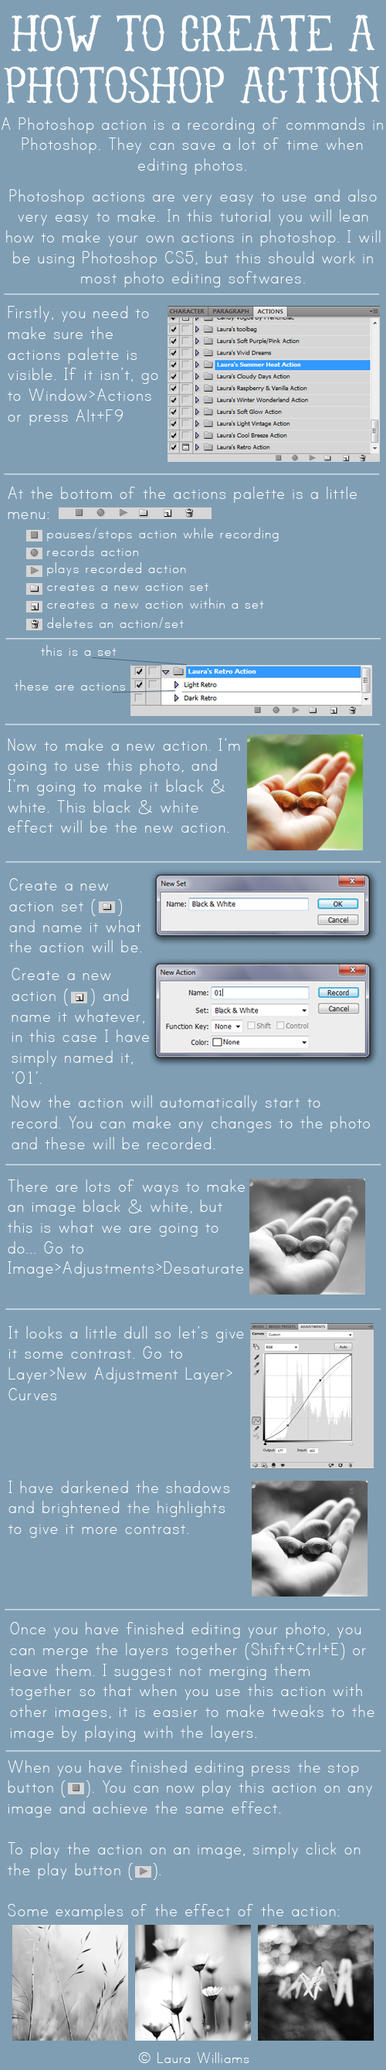 Making a PS action tutorial by Laura1995